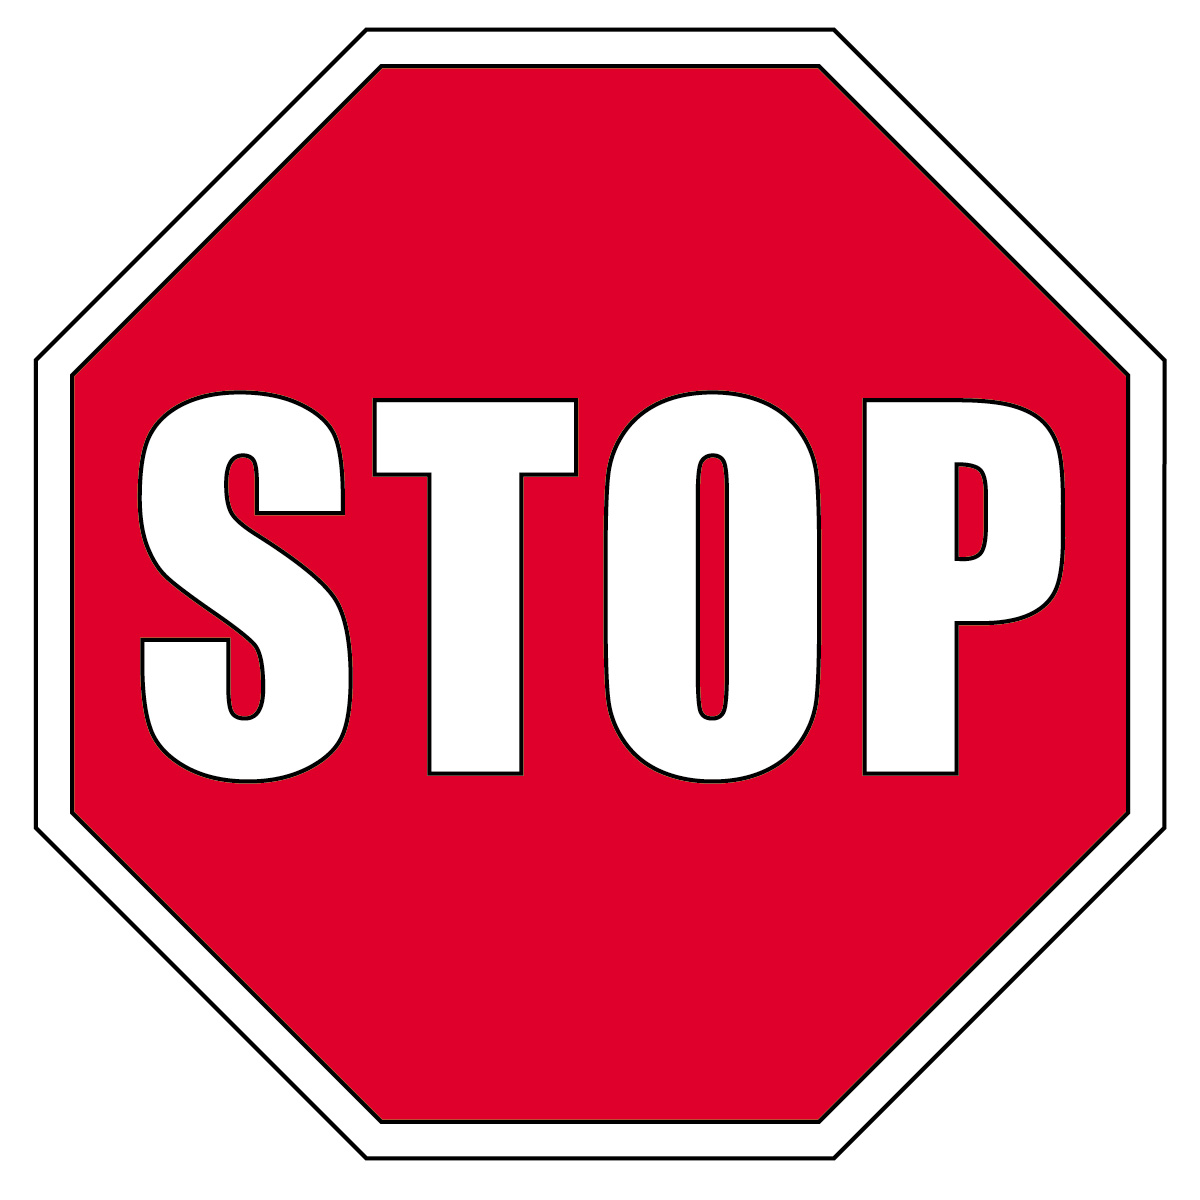 stop sign clipart-stop sign clipart-9